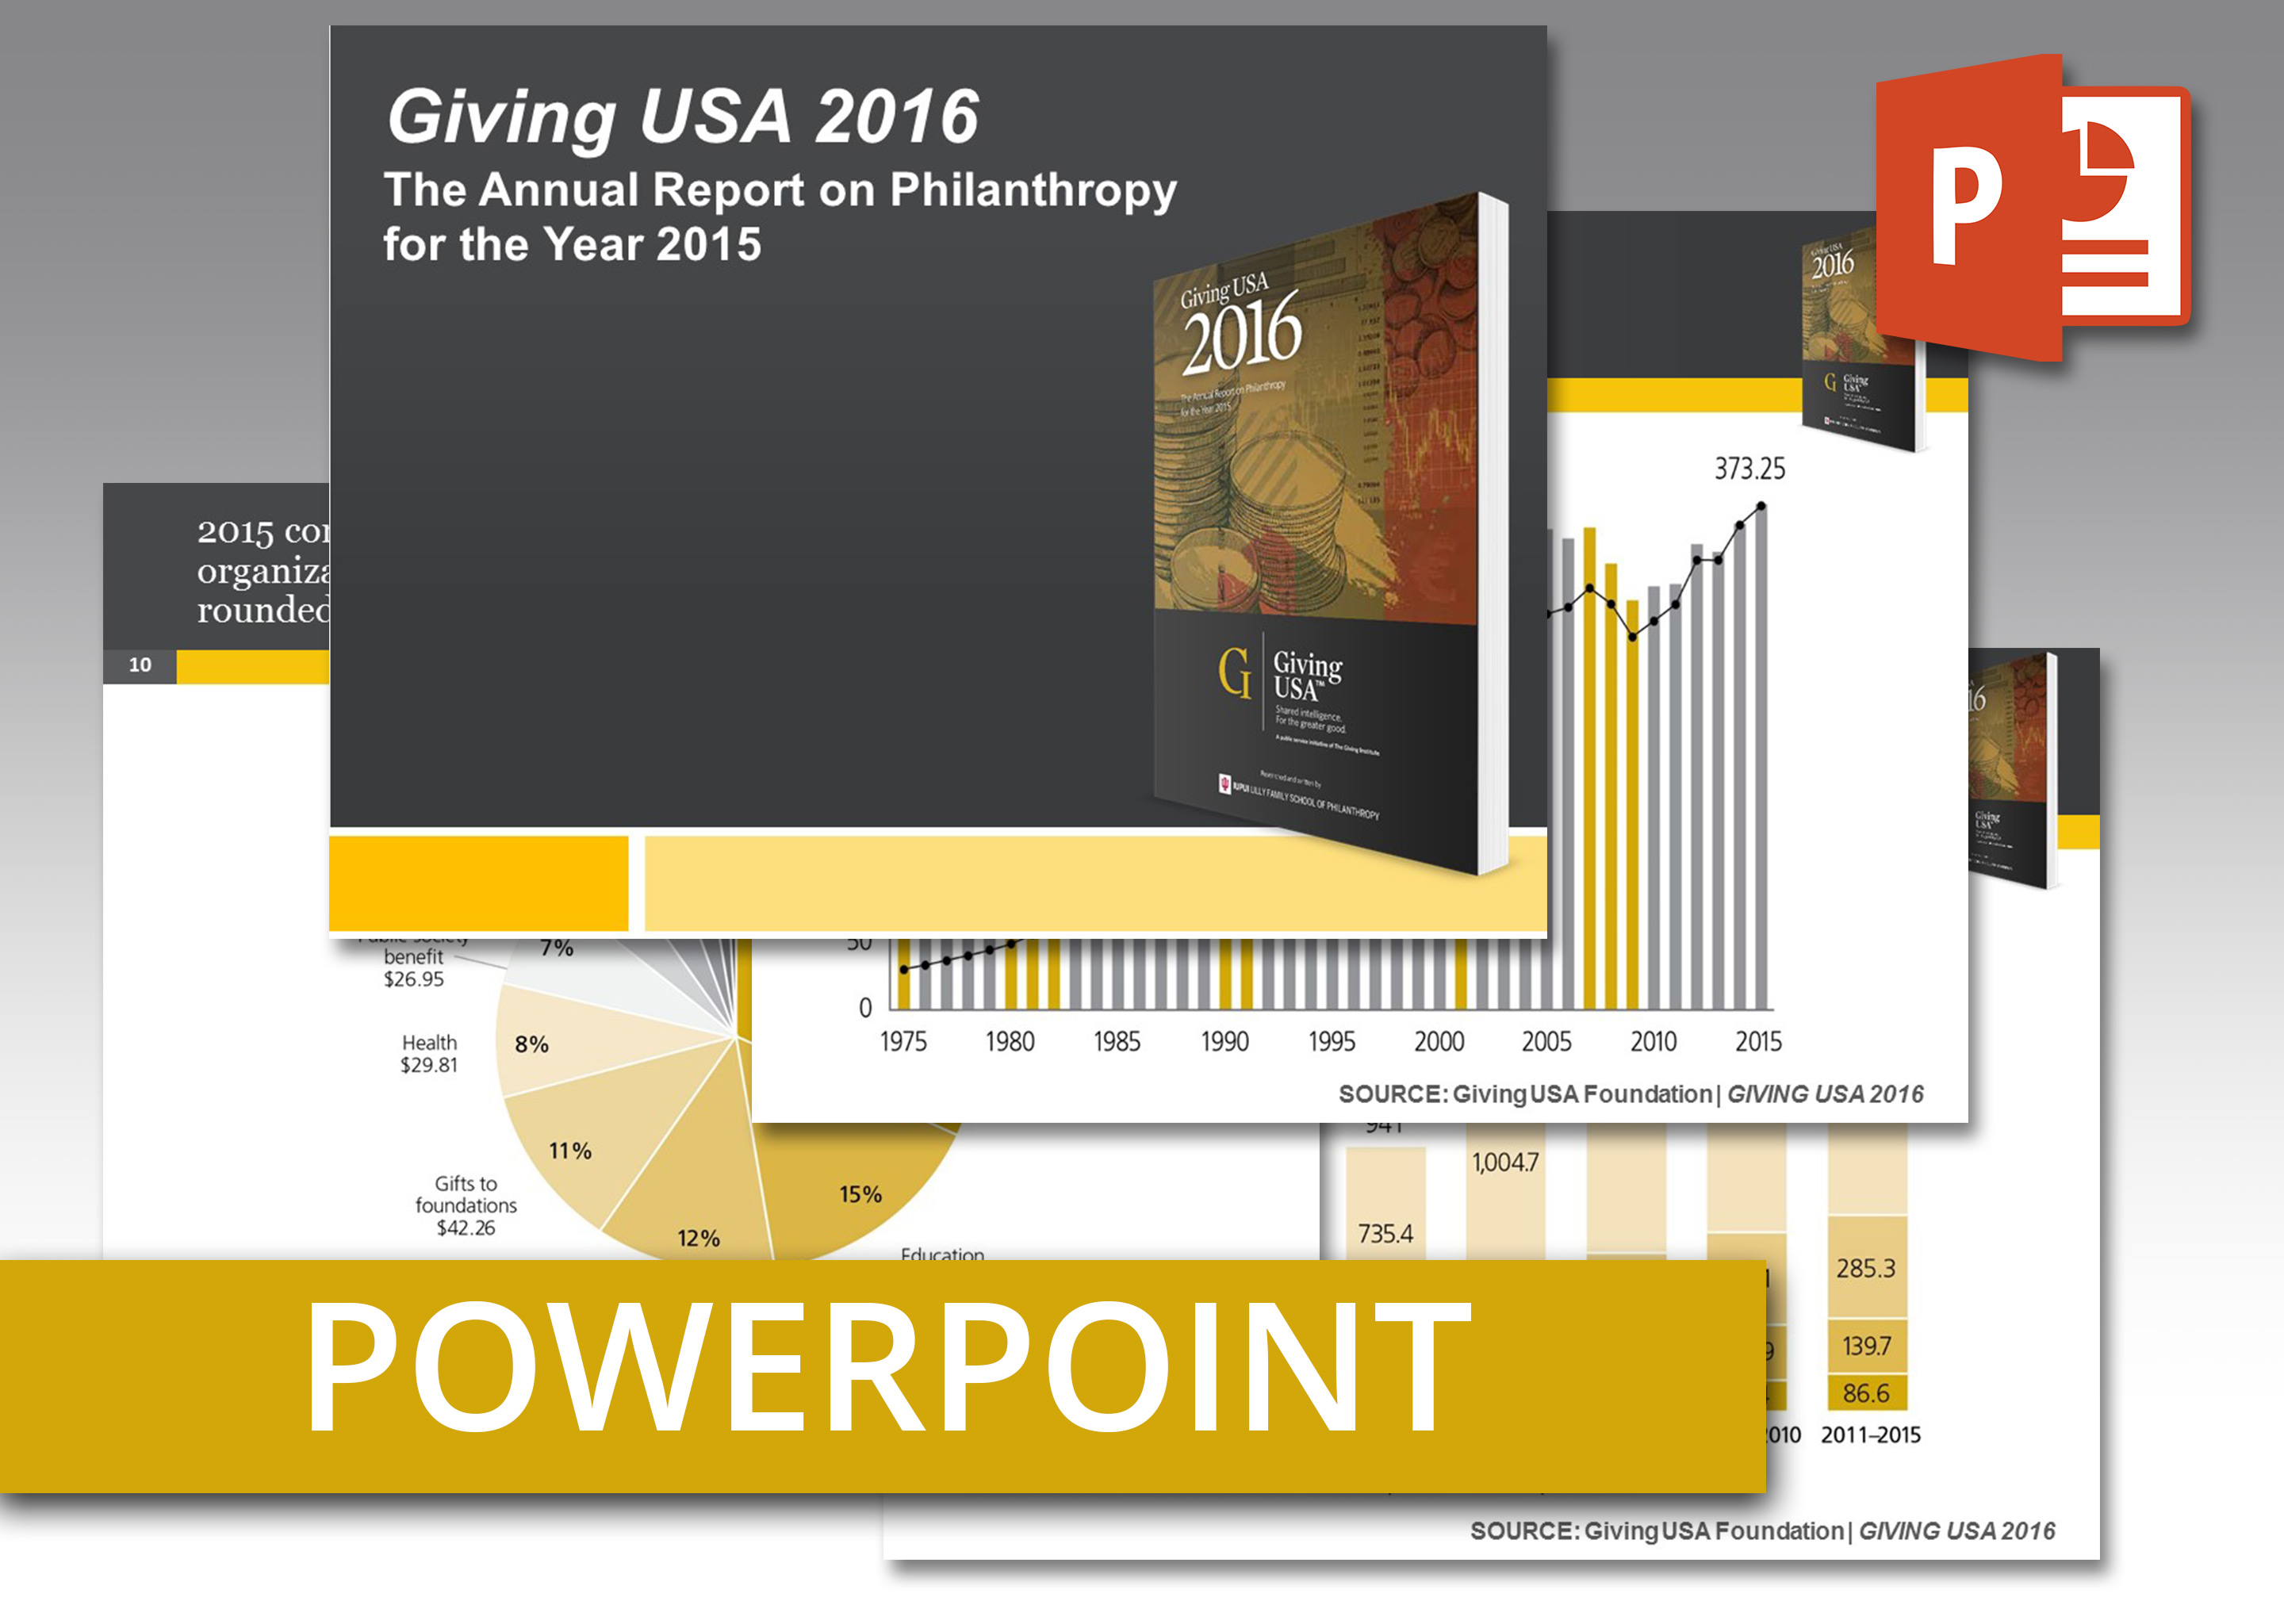 Usdgus  Wonderful Giving Usa  Powerpoint An Easytouse Presentation Of Report  With Lovable Giving Usa  Powerpoint An Easytouse Presentation Of Report Findings Including Talking Points With Amazing Creation Powerpoint Also Tri Fold Powerpoint Template In Addition How To Create A Powerpoint Presentation Step By Step And Zen Powerpoint As Well As Interesting Powerpoint Additionally Powerpoint Fishbone Diagram From Givingusaorg With Usdgus  Lovable Giving Usa  Powerpoint An Easytouse Presentation Of Report  With Amazing Giving Usa  Powerpoint An Easytouse Presentation Of Report Findings Including Talking Points And Wonderful Creation Powerpoint Also Tri Fold Powerpoint Template In Addition How To Create A Powerpoint Presentation Step By Step From Givingusaorg